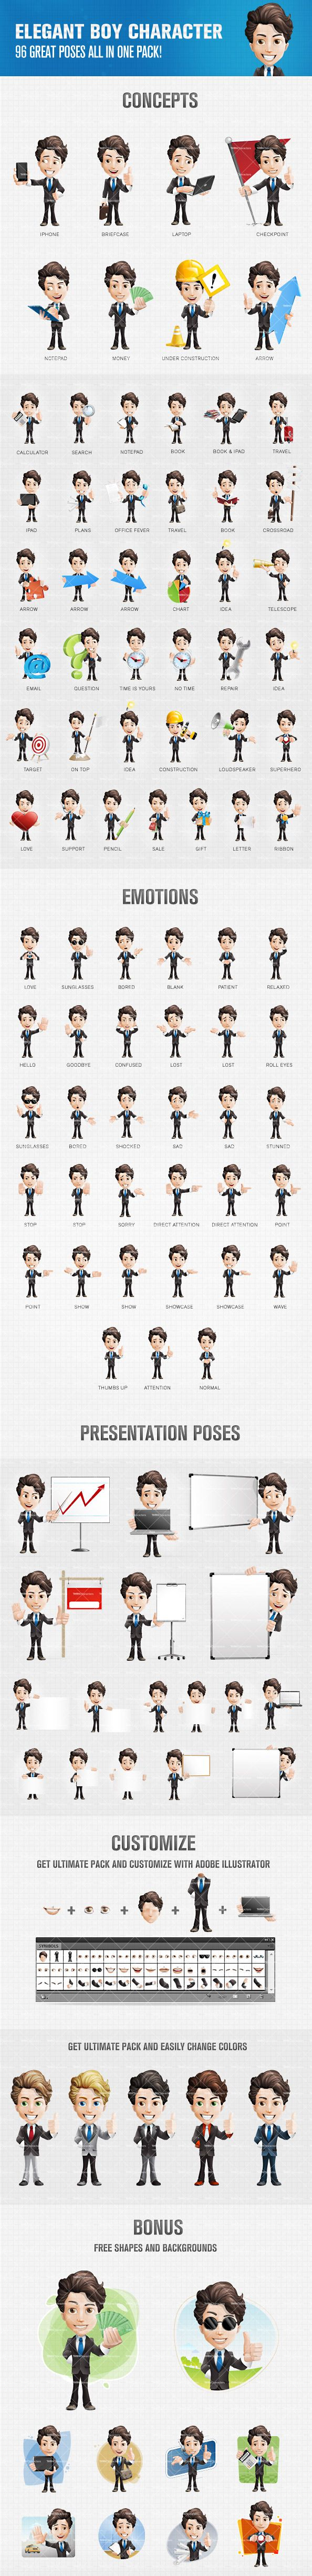 Elegant boy cartoon character designed in 96 poses and moods. With that impressive amount of poses we've got you covered in any situation. Continue reading →